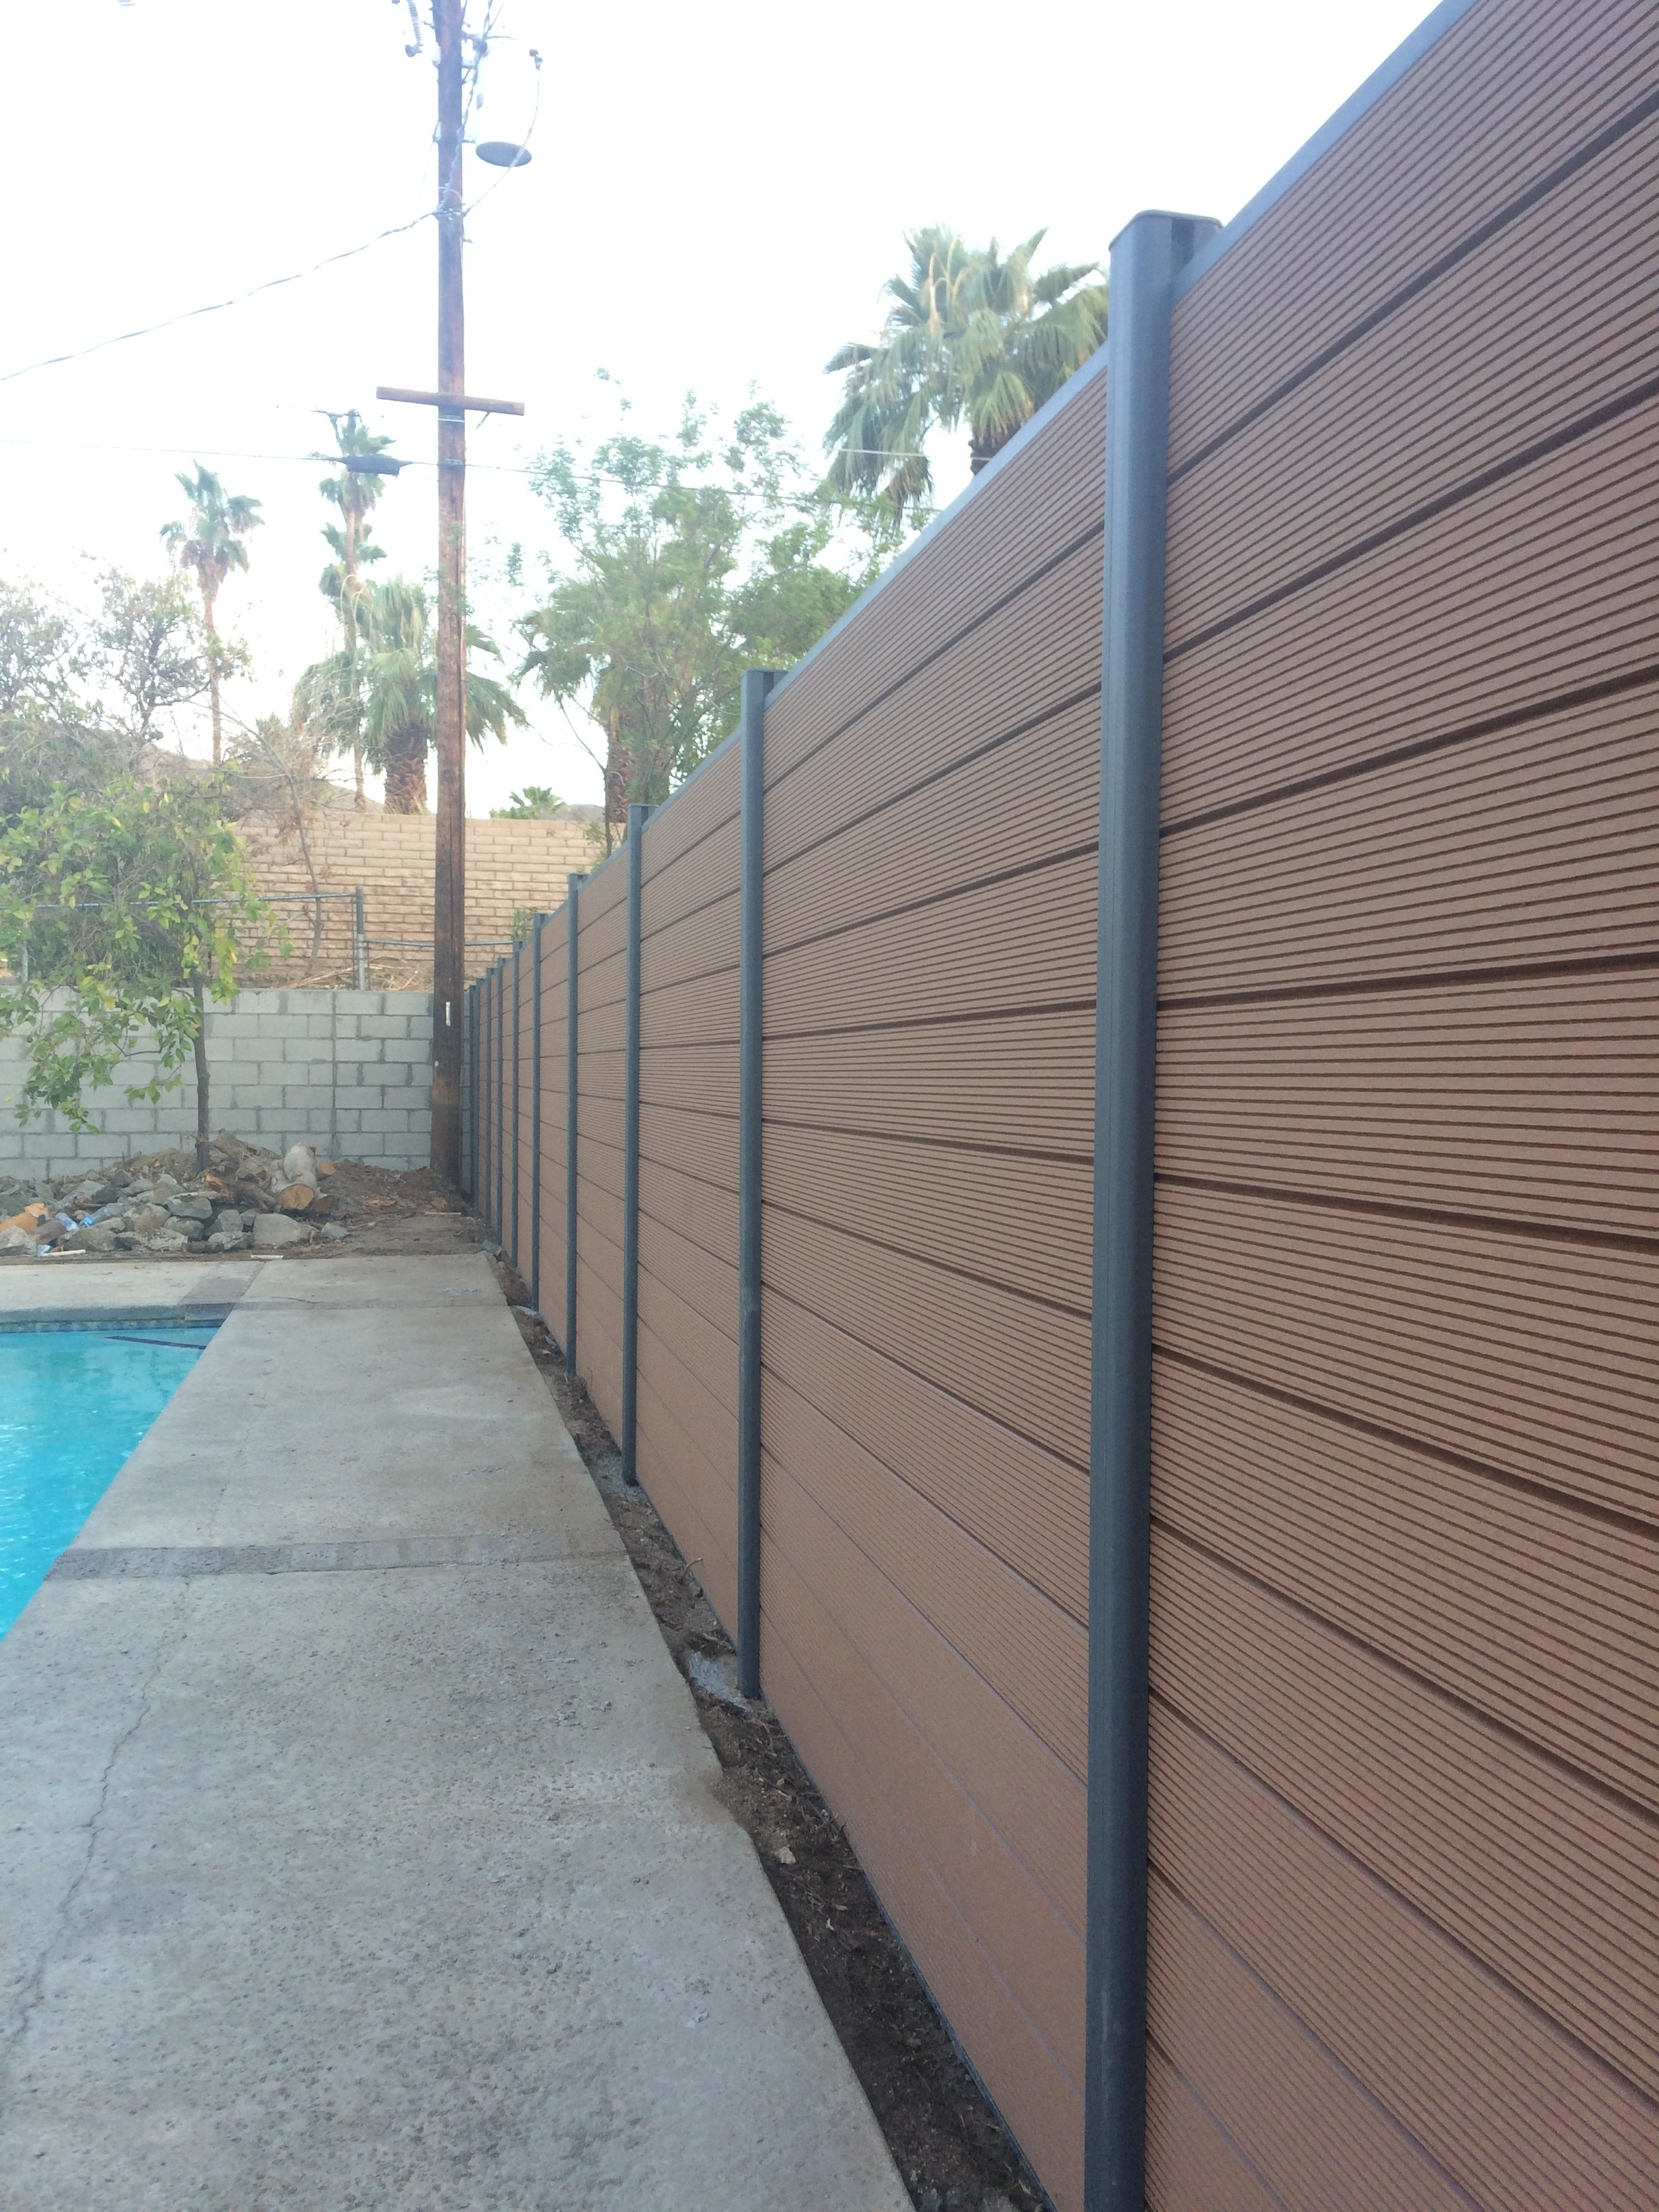 Privacy Fence / Euro Style Mocha / 6'x6' With One Post EP Euro Style 6x6 Ft. Composite Privacy Fence Kit 0